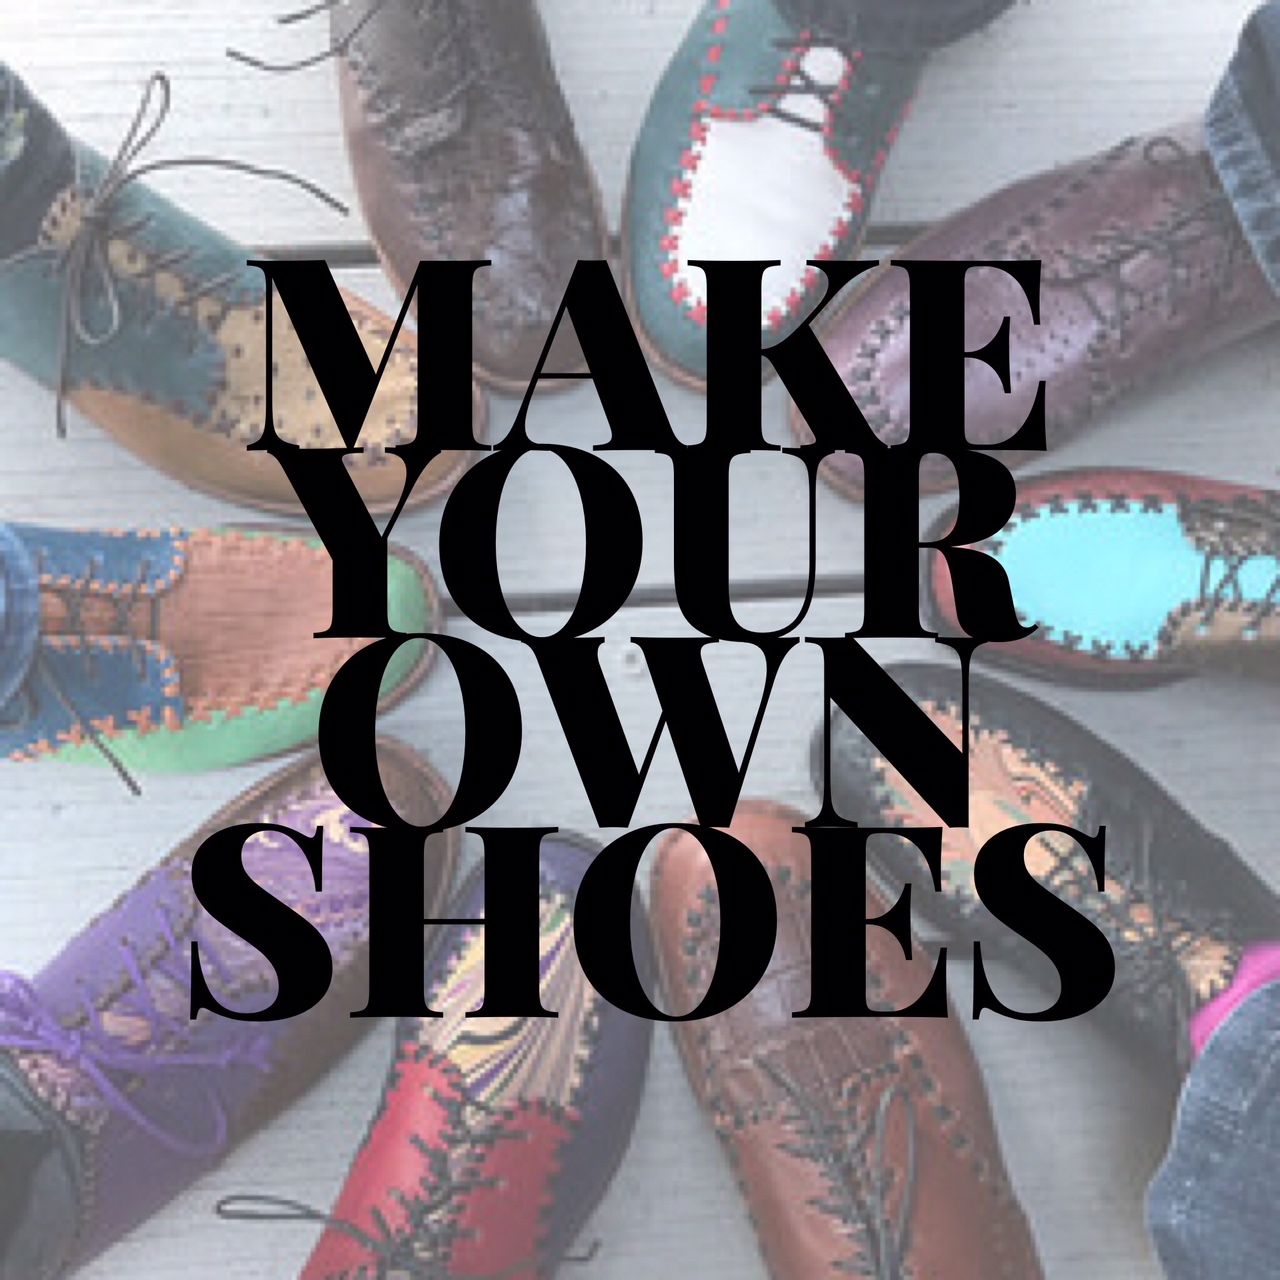 Make Your Own Shoes.jpeg